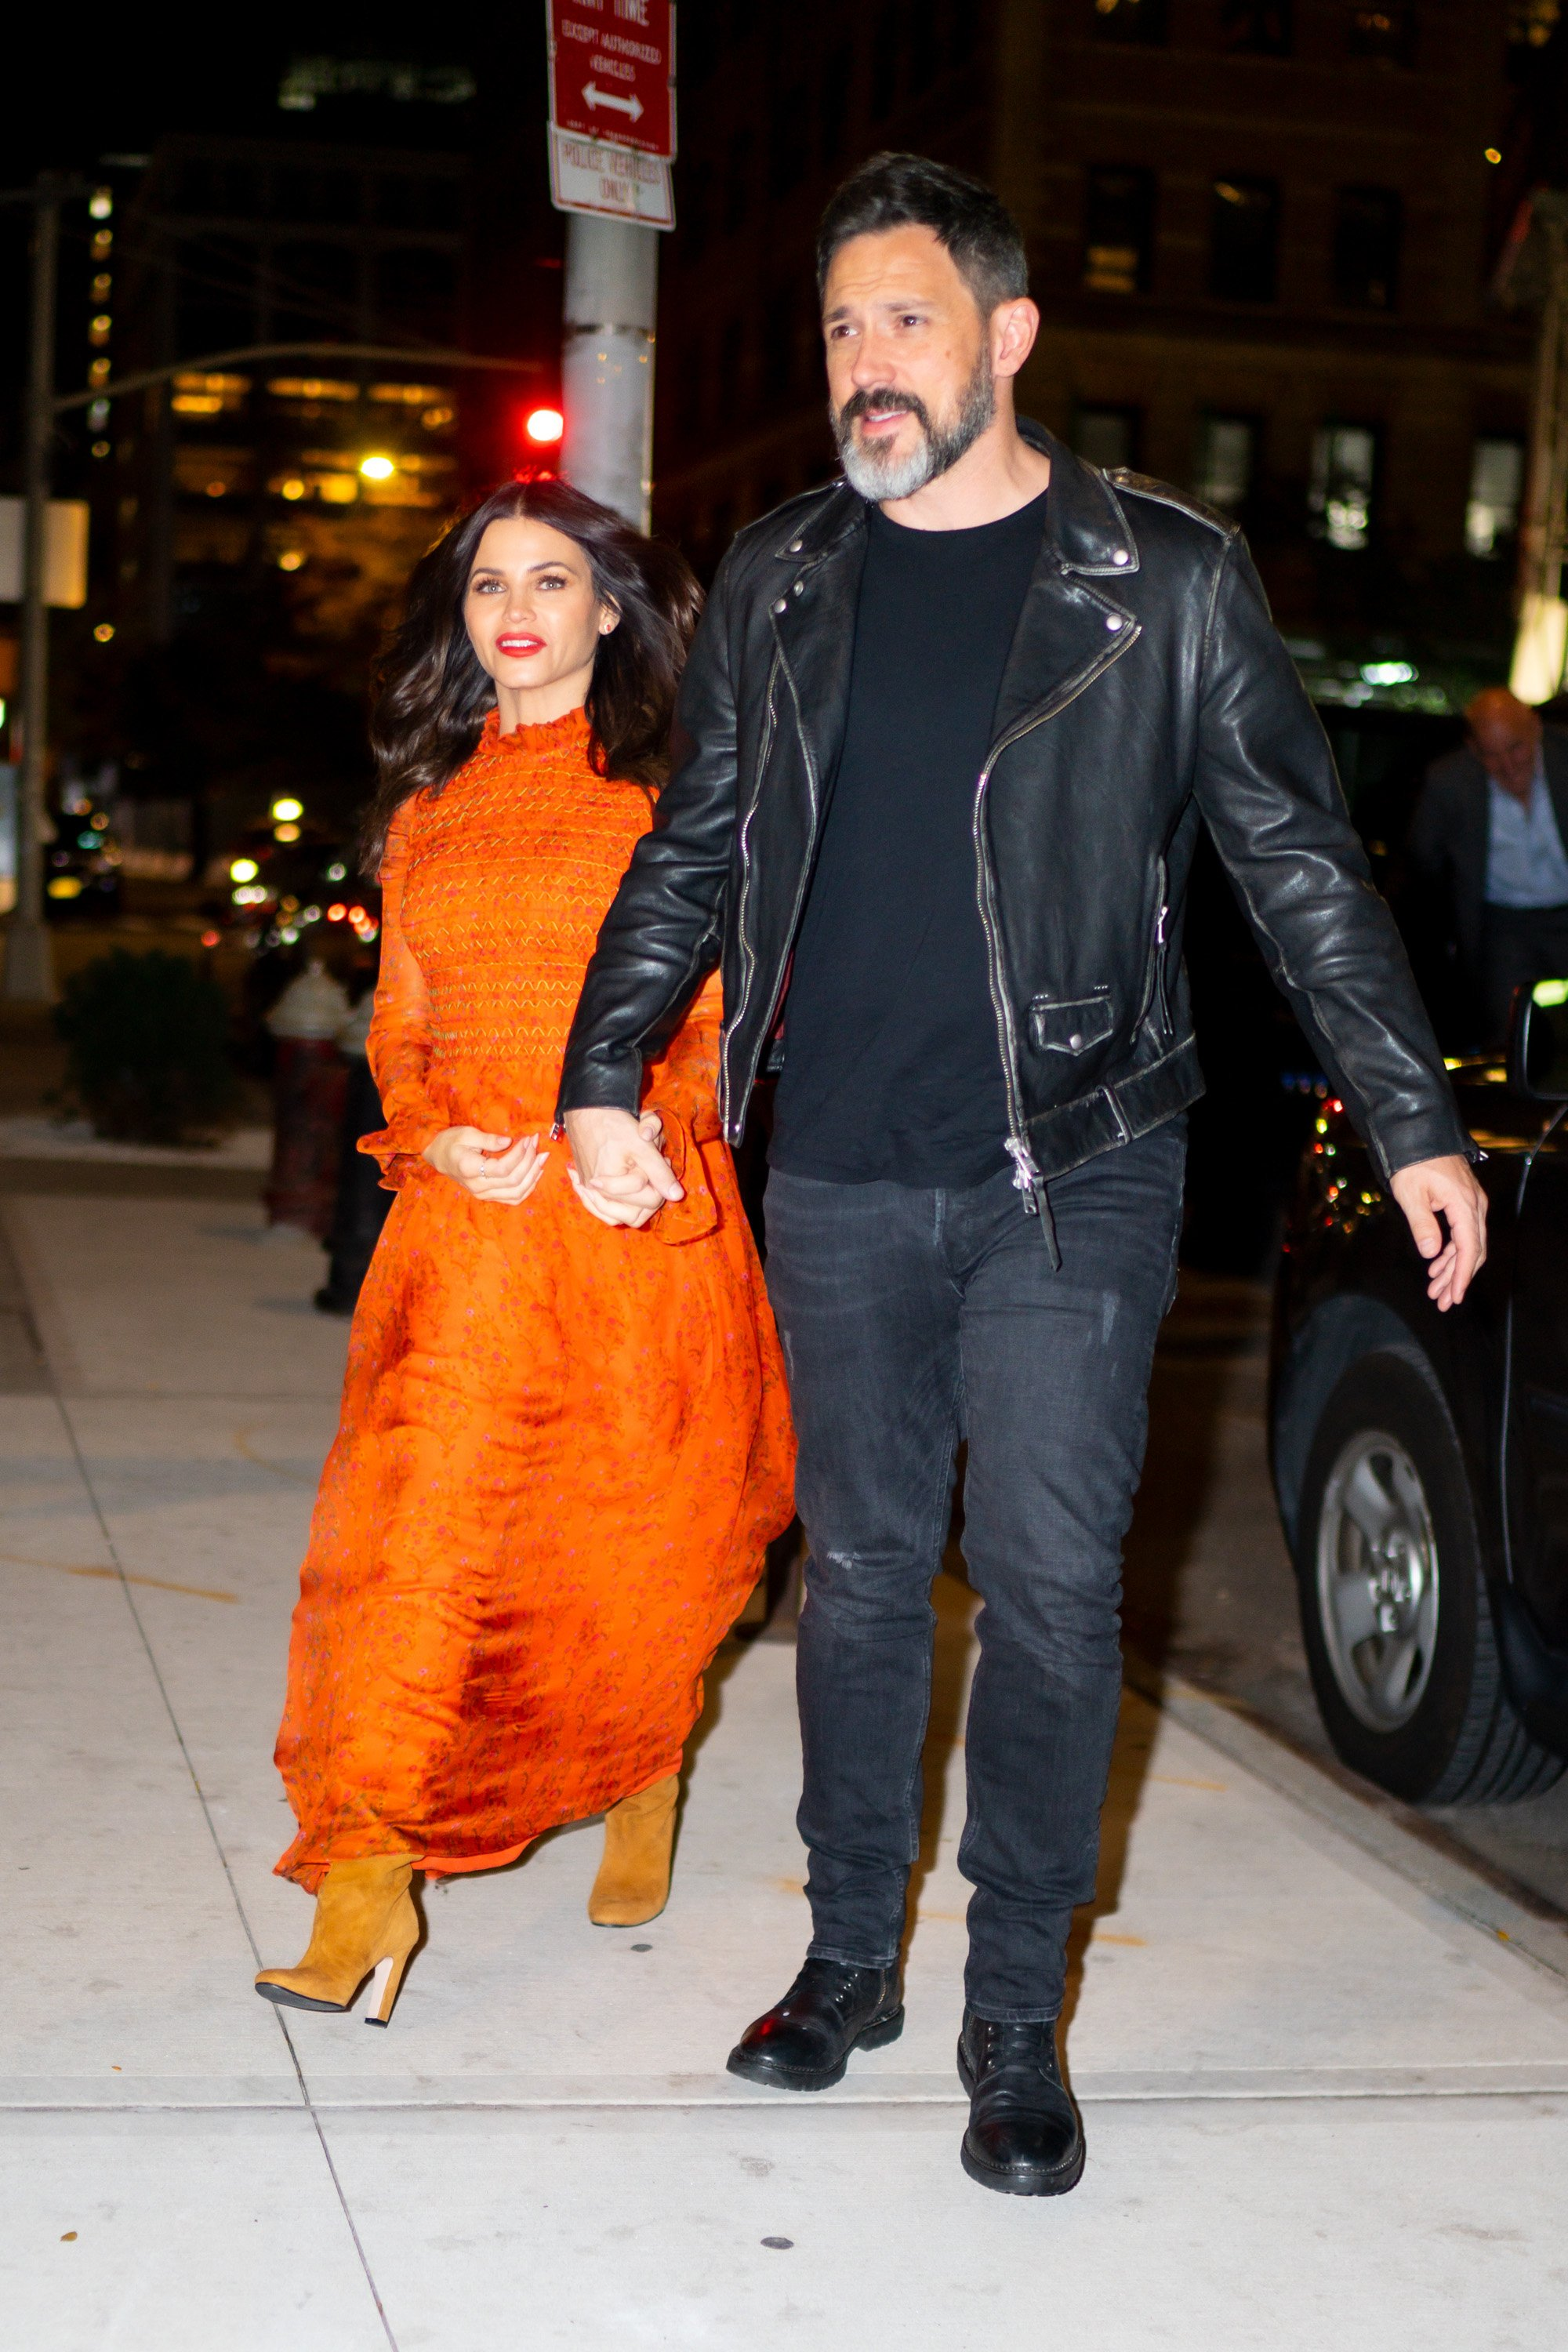 Pregnant Jenna Dewan and Steve Kazee seen out in New York together, 2019   Photo: Getty Images